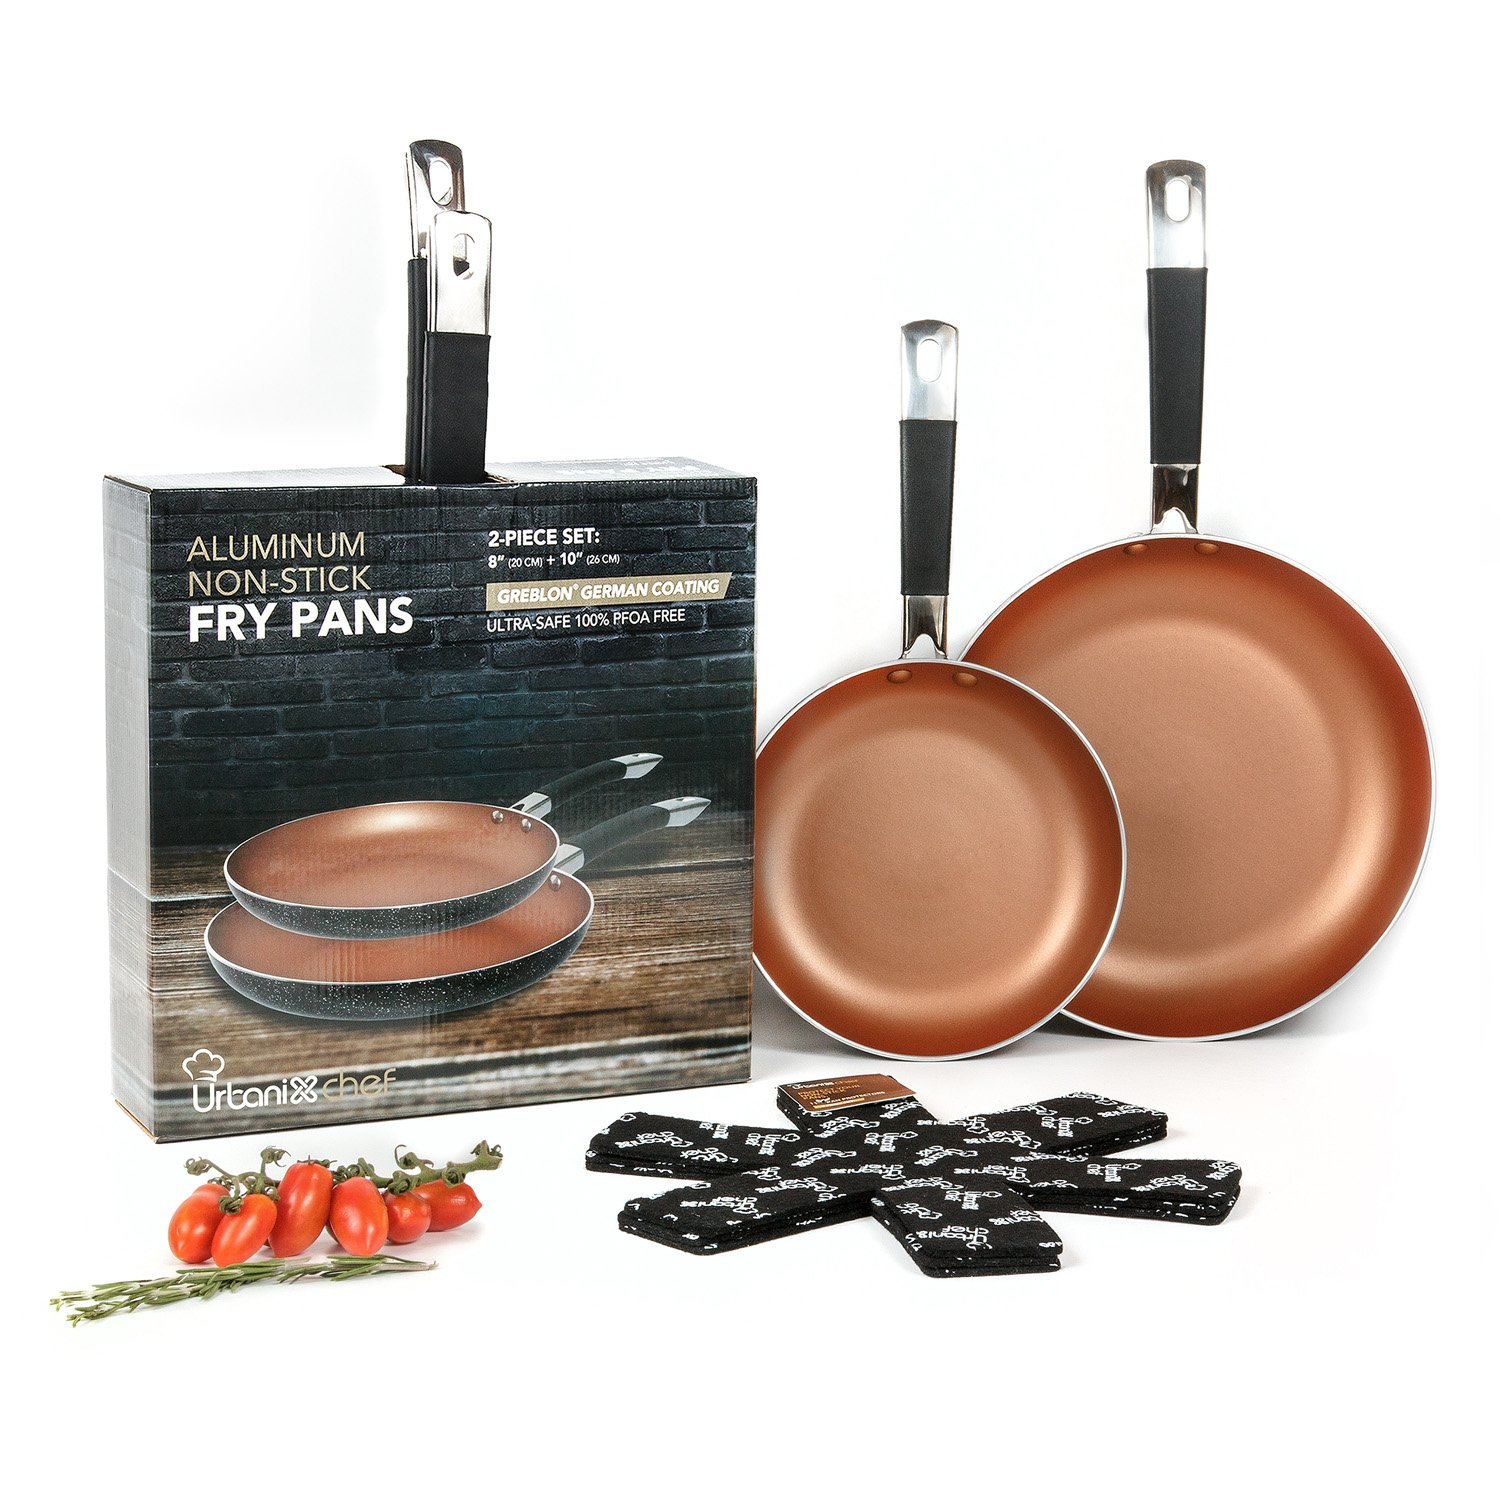 UrbanixChef Frying Pans . Superior German Greblon Non-stick Coating Copper Color. 2 Pcs - 8 and 10 Inch.100% PFOA Free,Induction Compatible , Oven Safe.  Bonus 3 pc.11 Inch Pan Protectors by URBANIX (Image #1)